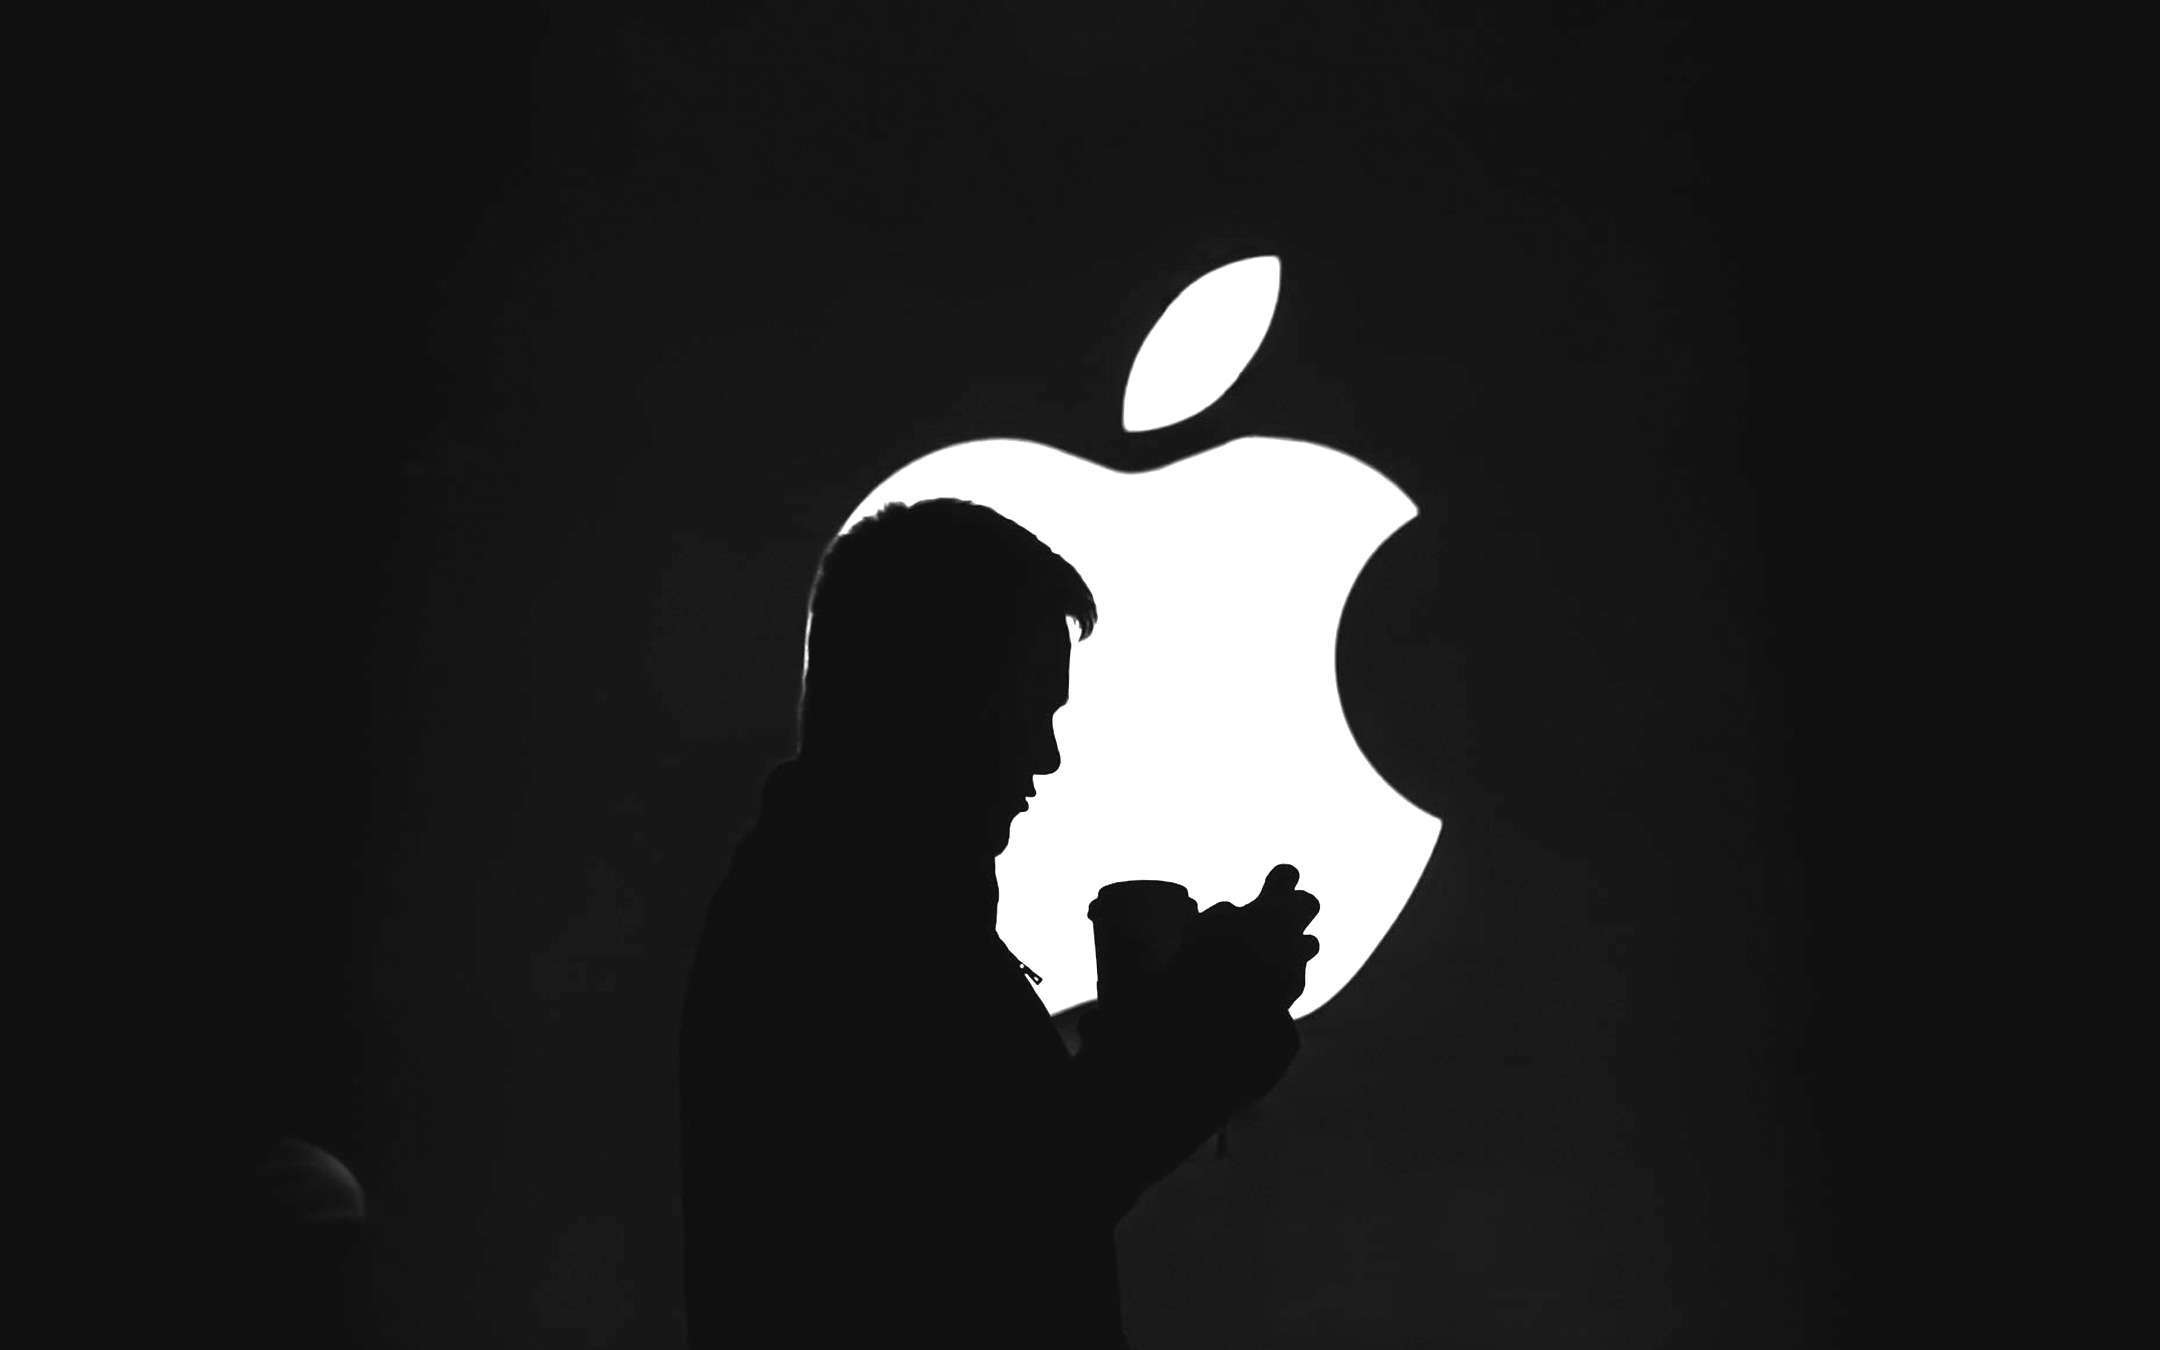 Apple's business is solid despite the crisis